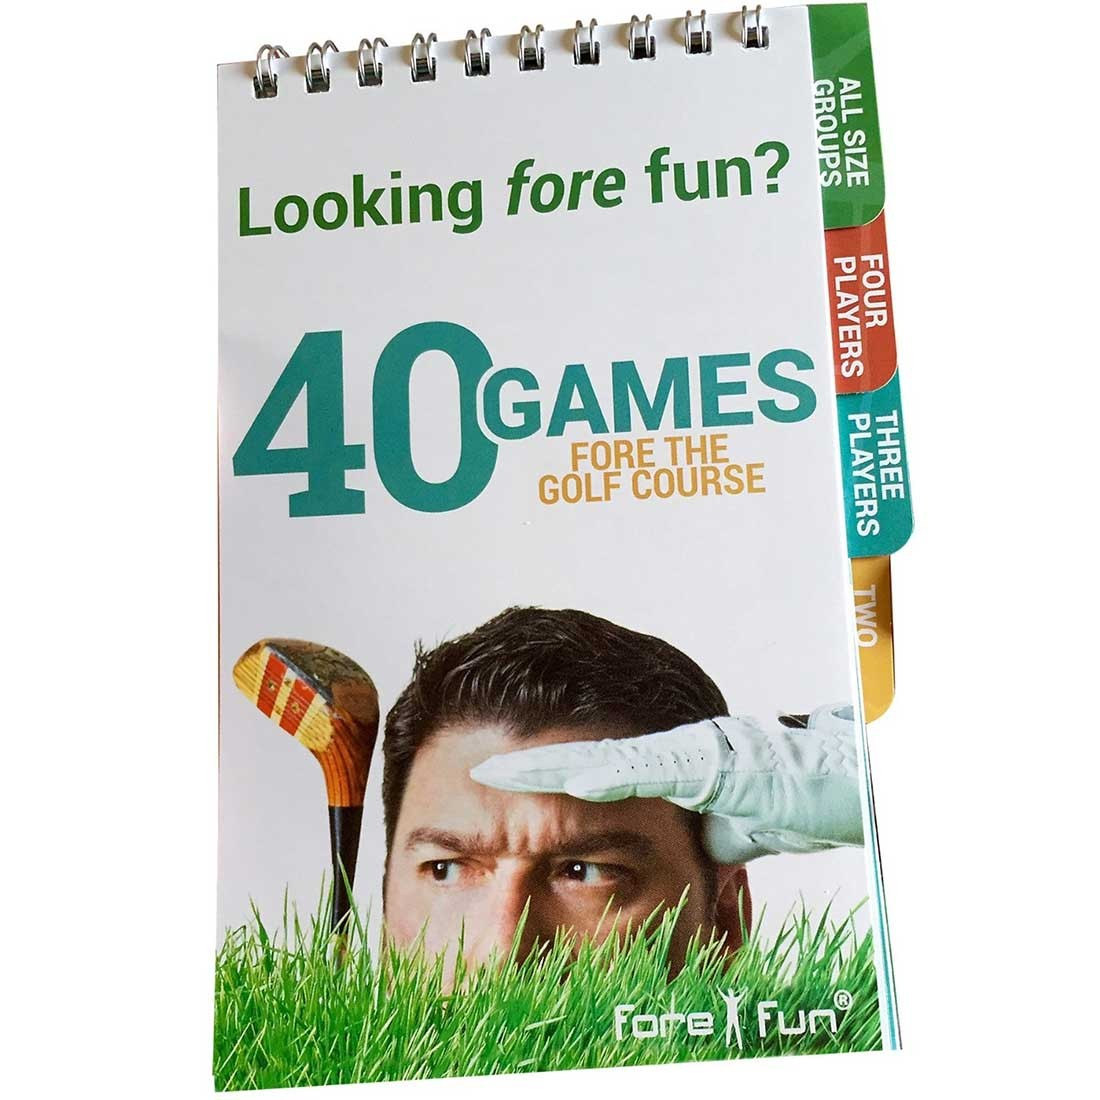 40 Games Fore The Golf Course Book